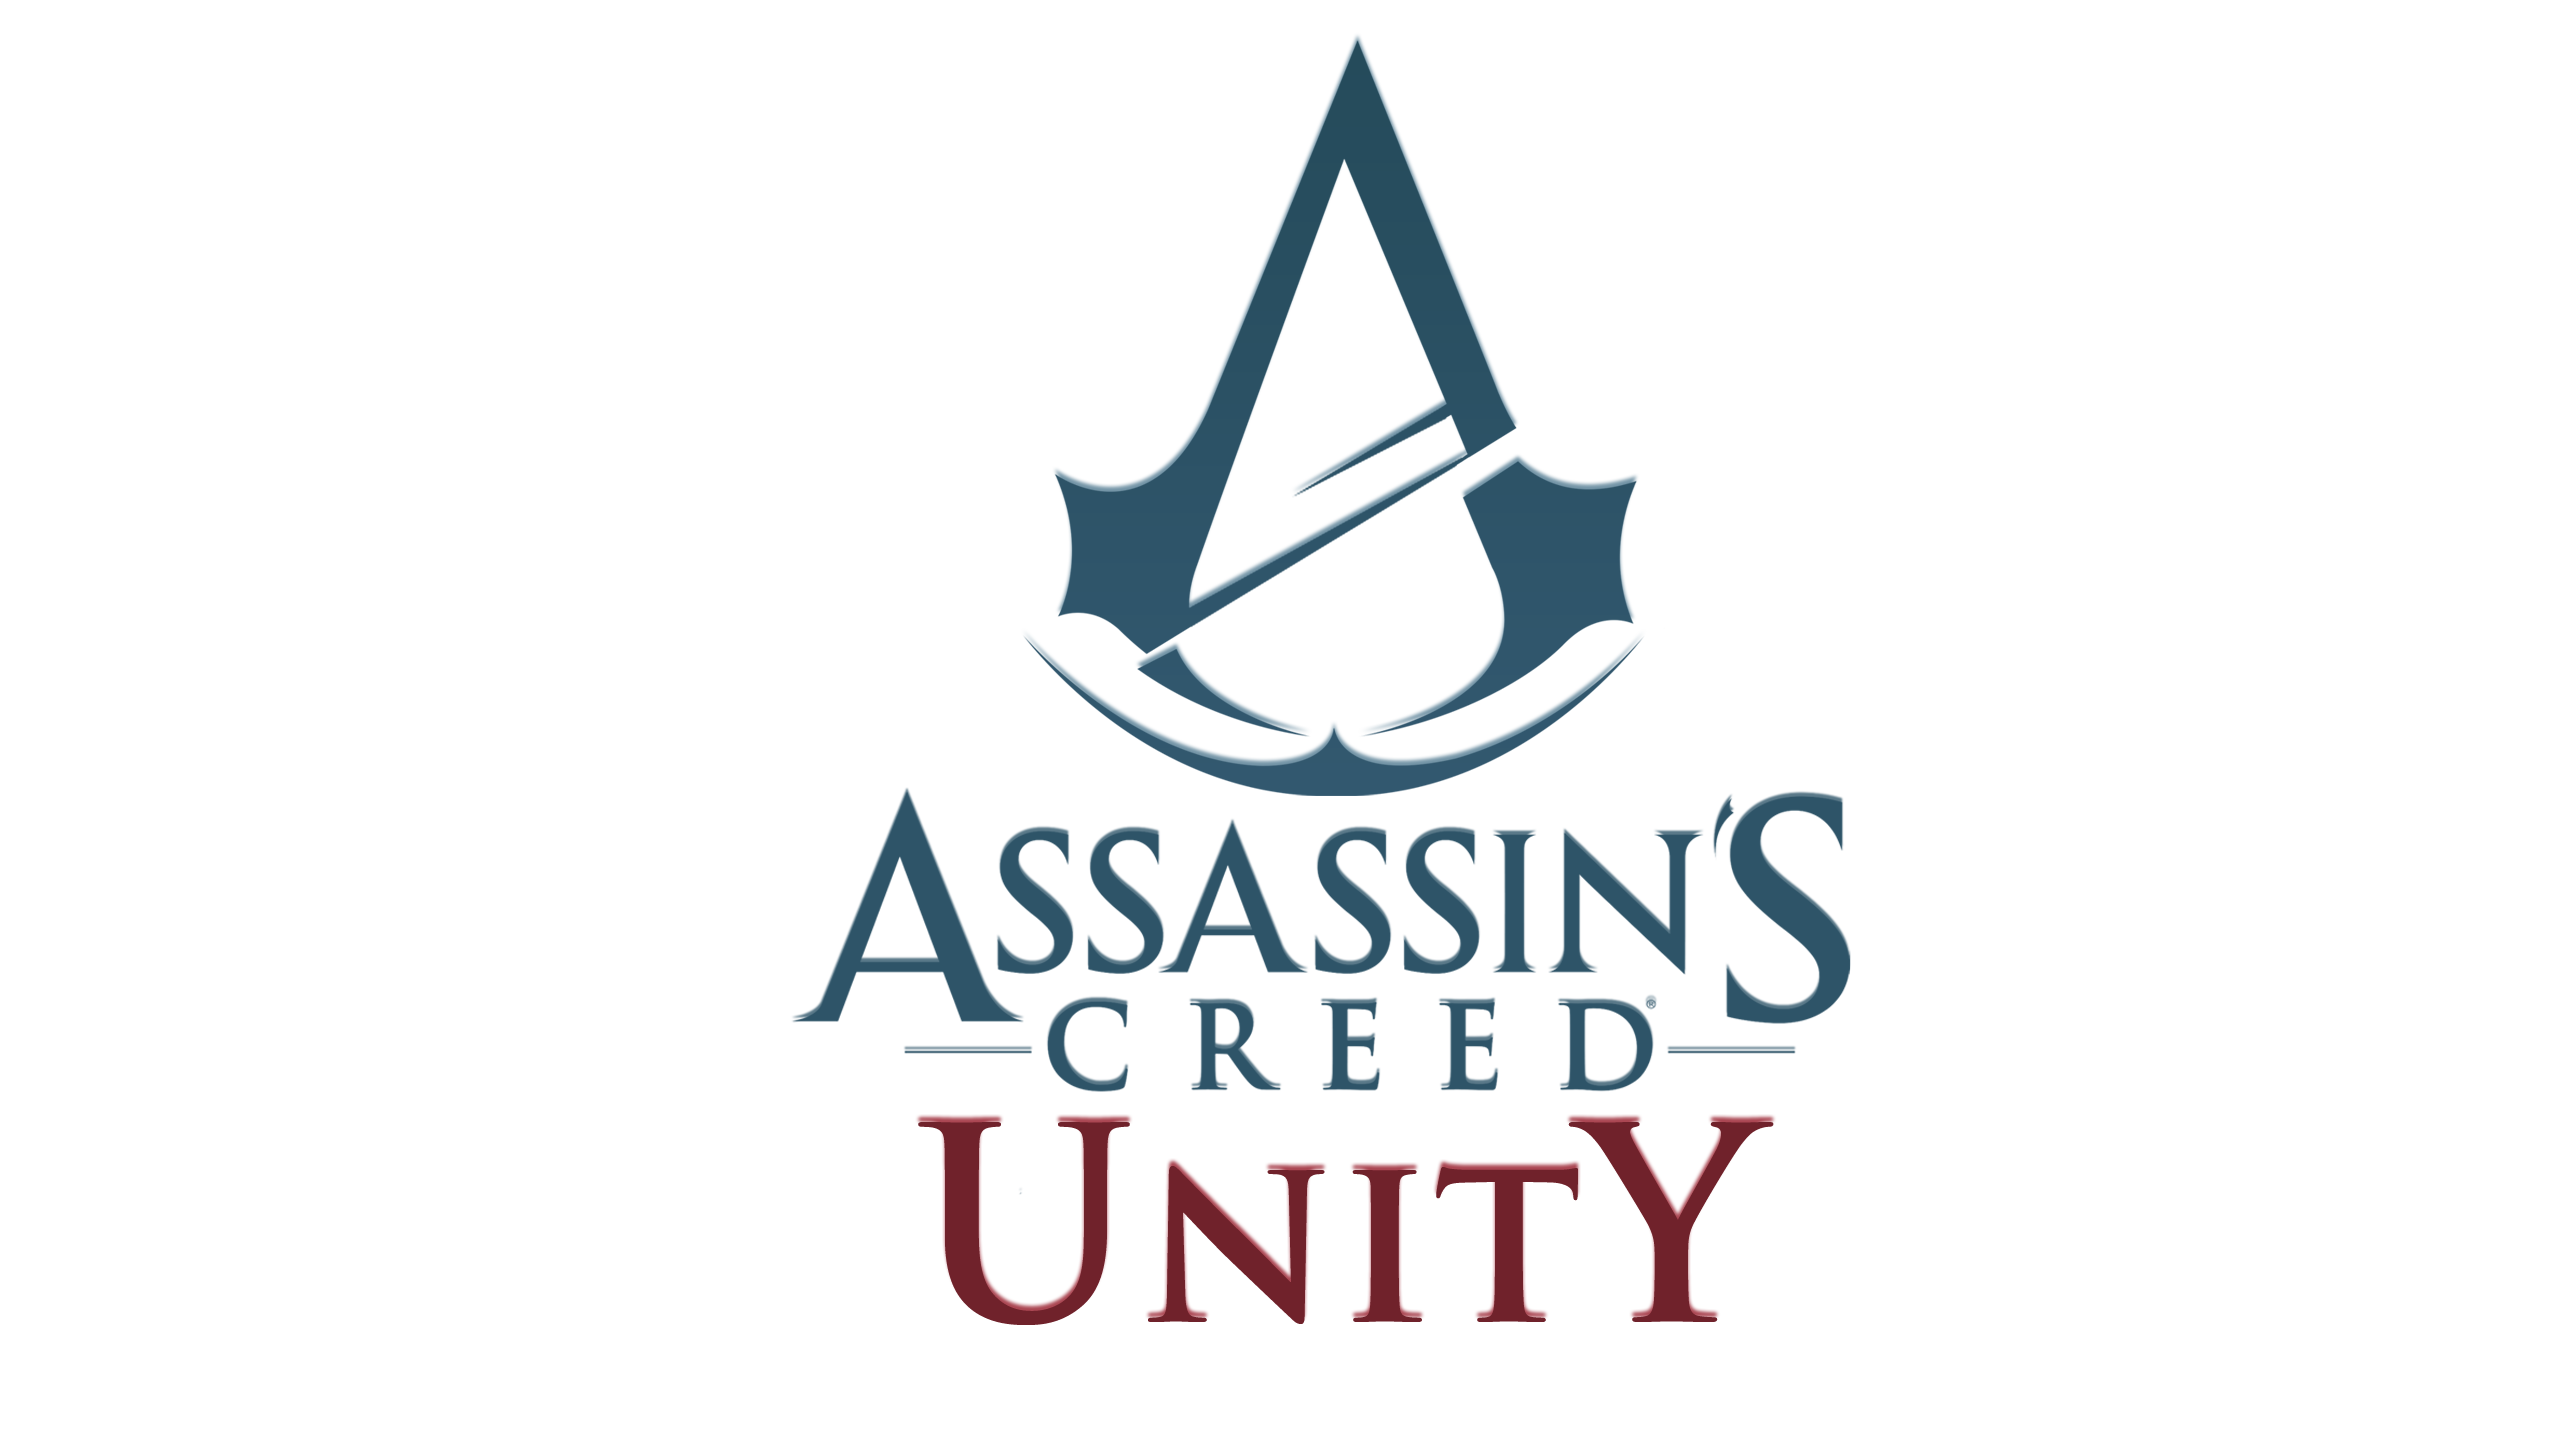 Vector unity strong. Mindboggling assassin s creed